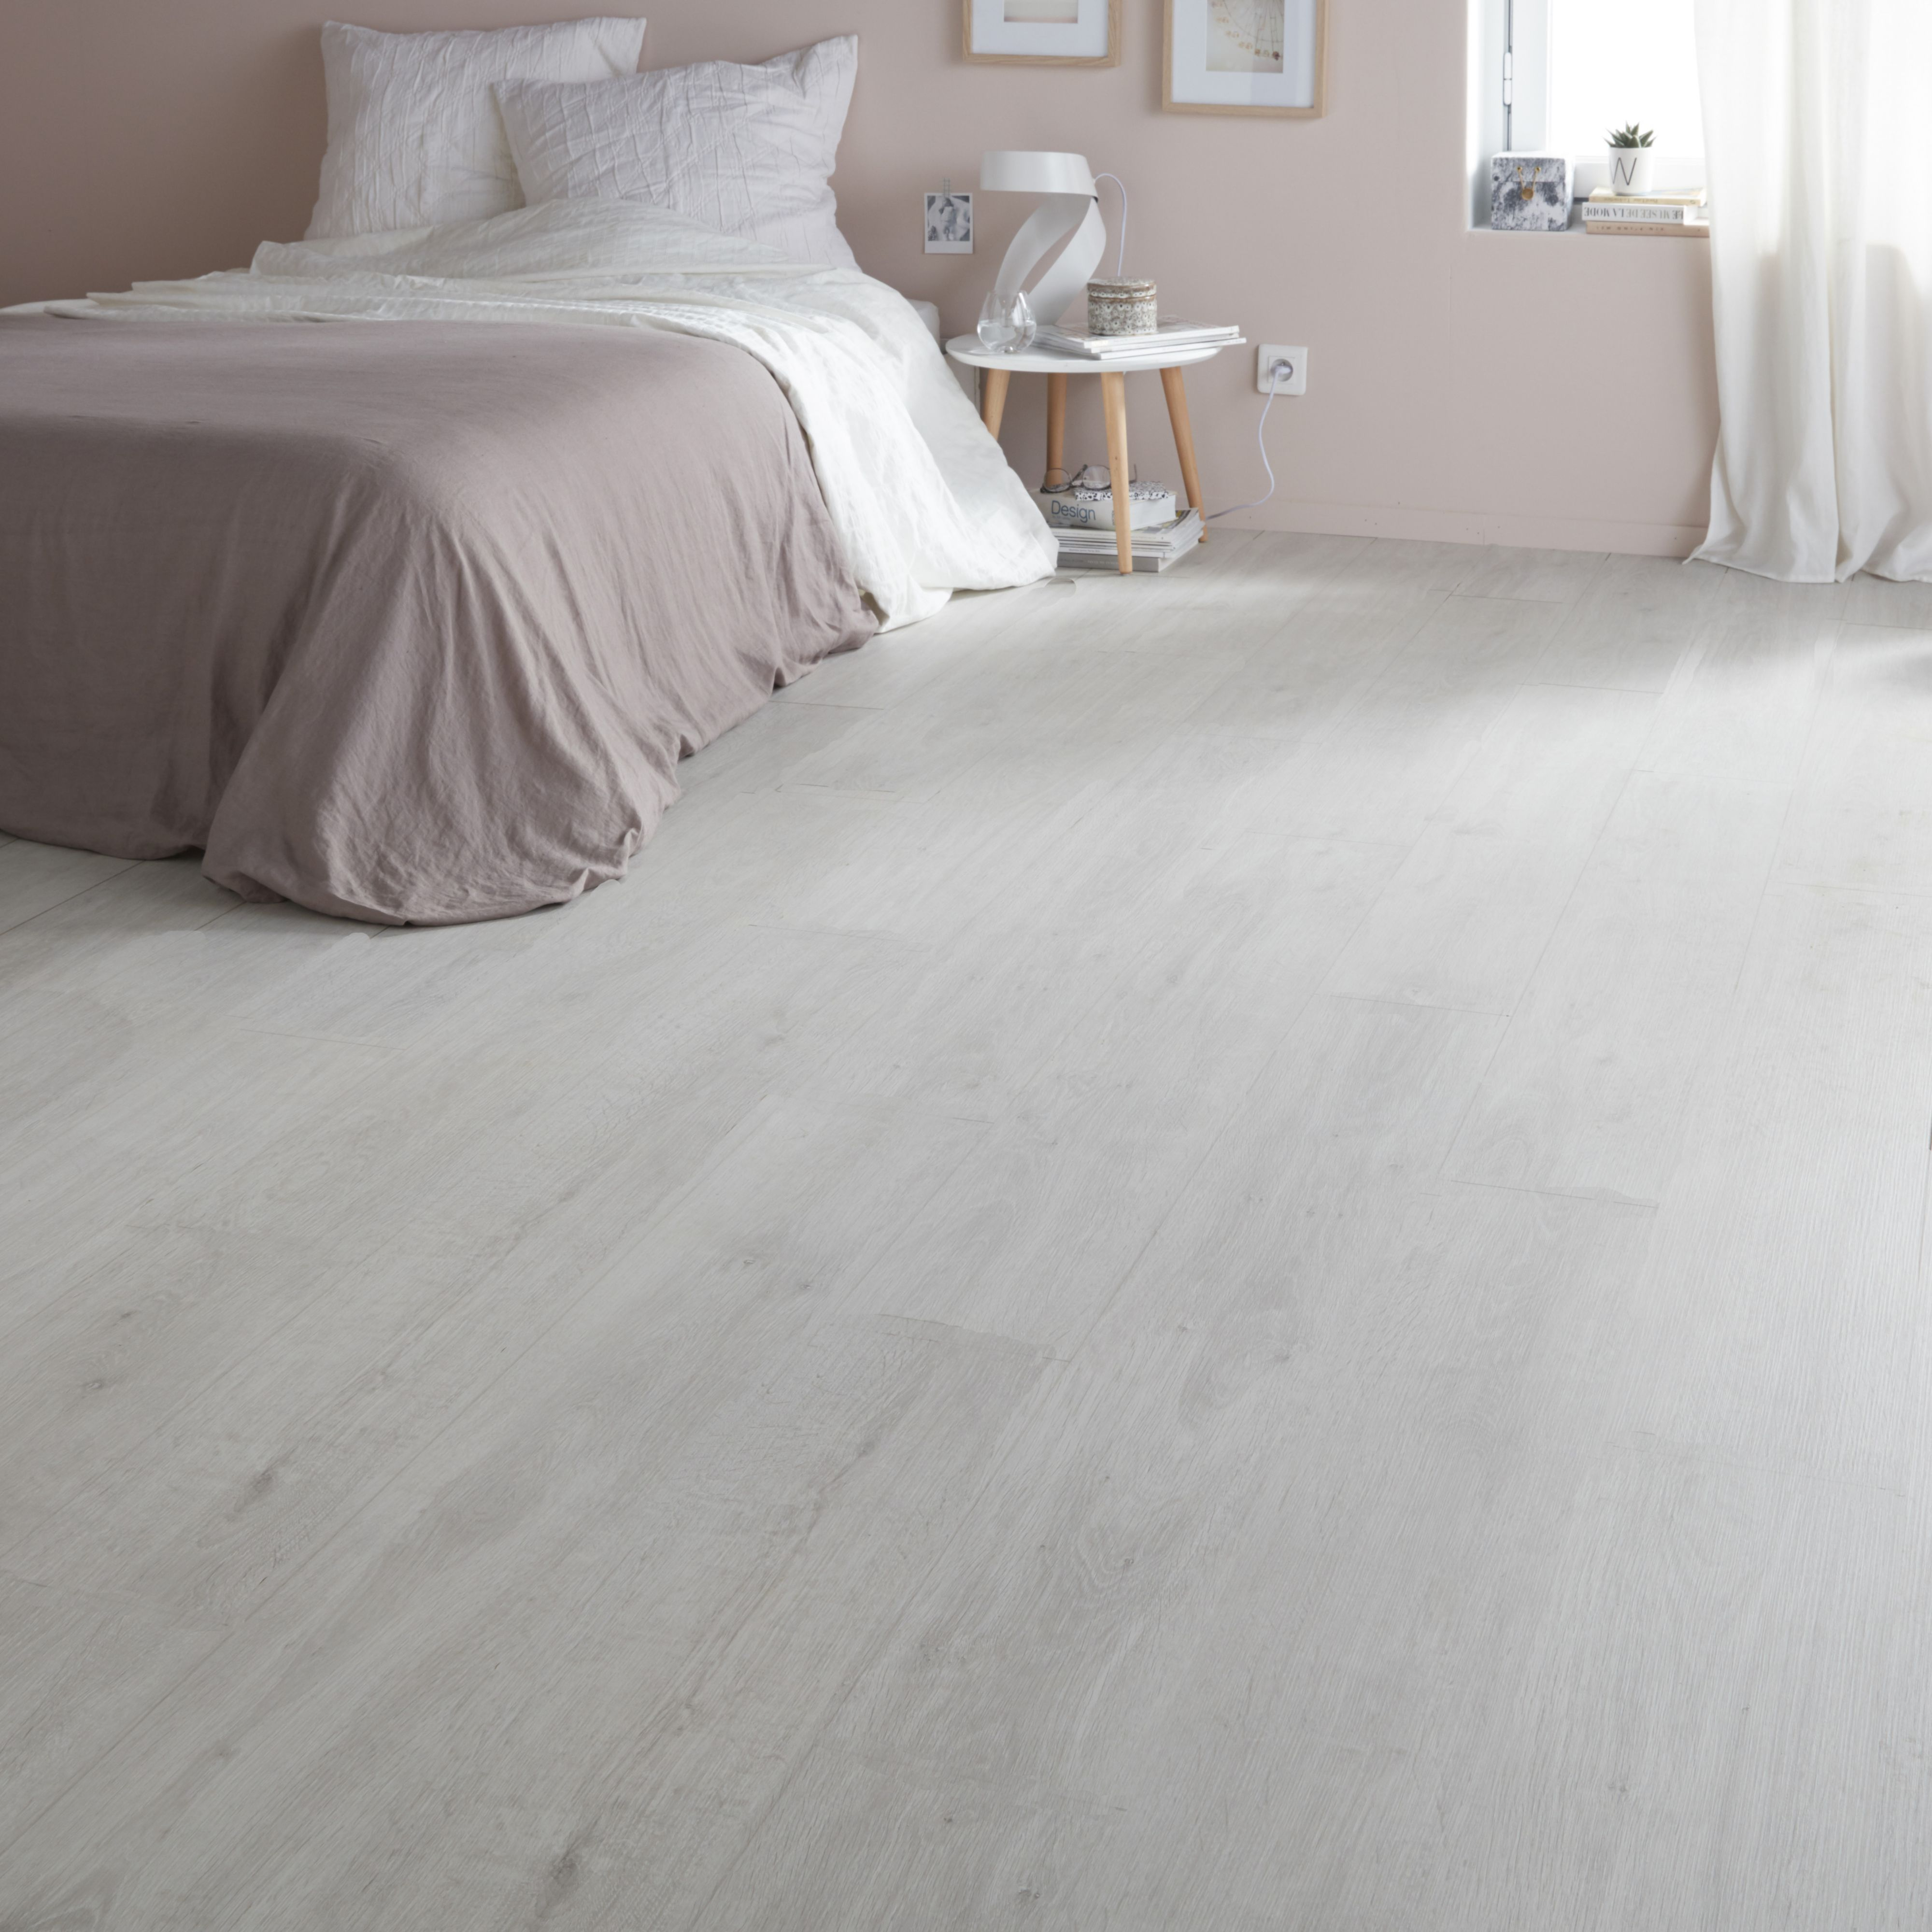 Geelong grey oak effect laminate flooring m pack Gray laminate flooring